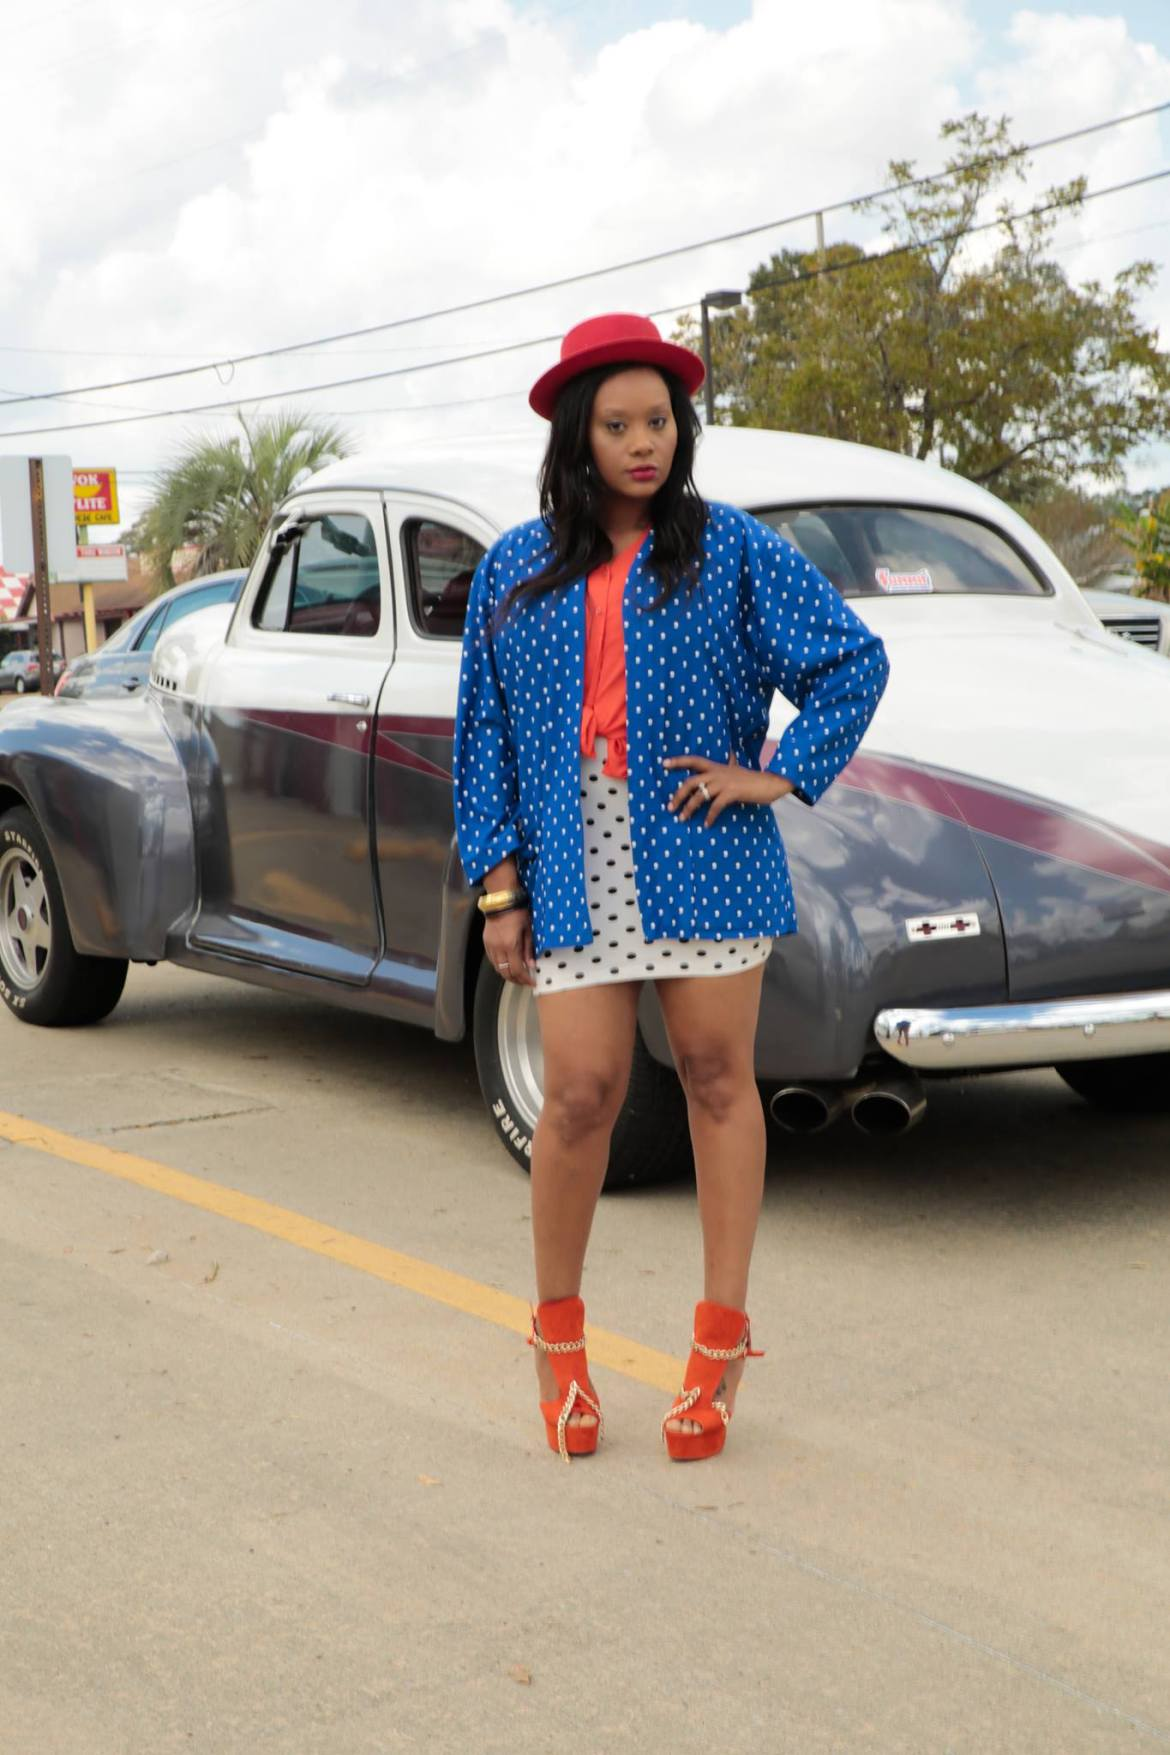 This chic is fierce and I Love it. Owning your own style